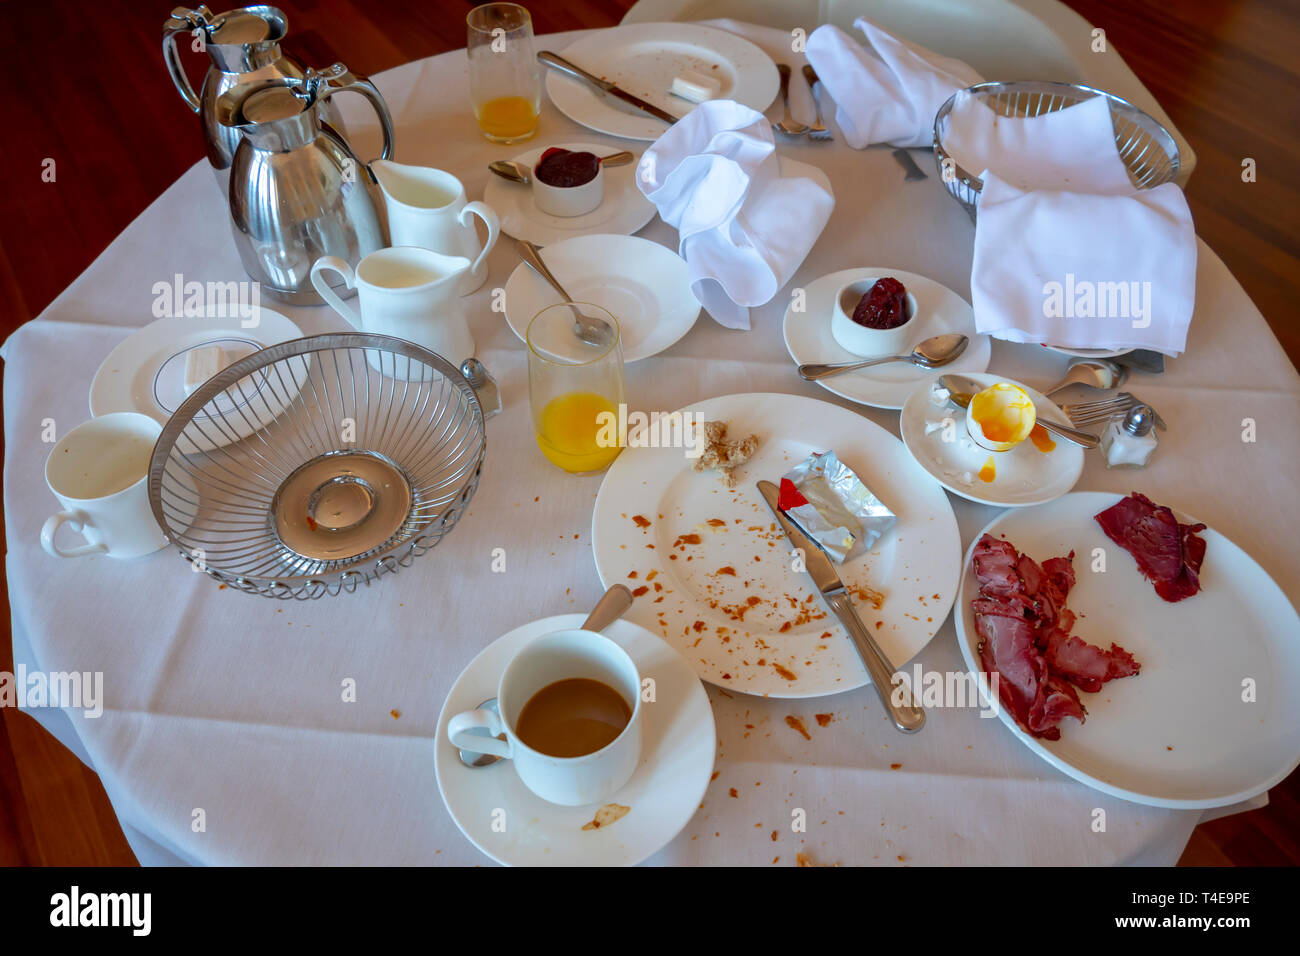 After Luxury Room Service Breakfast In Hotel Switzerland Stock Photo Alamy